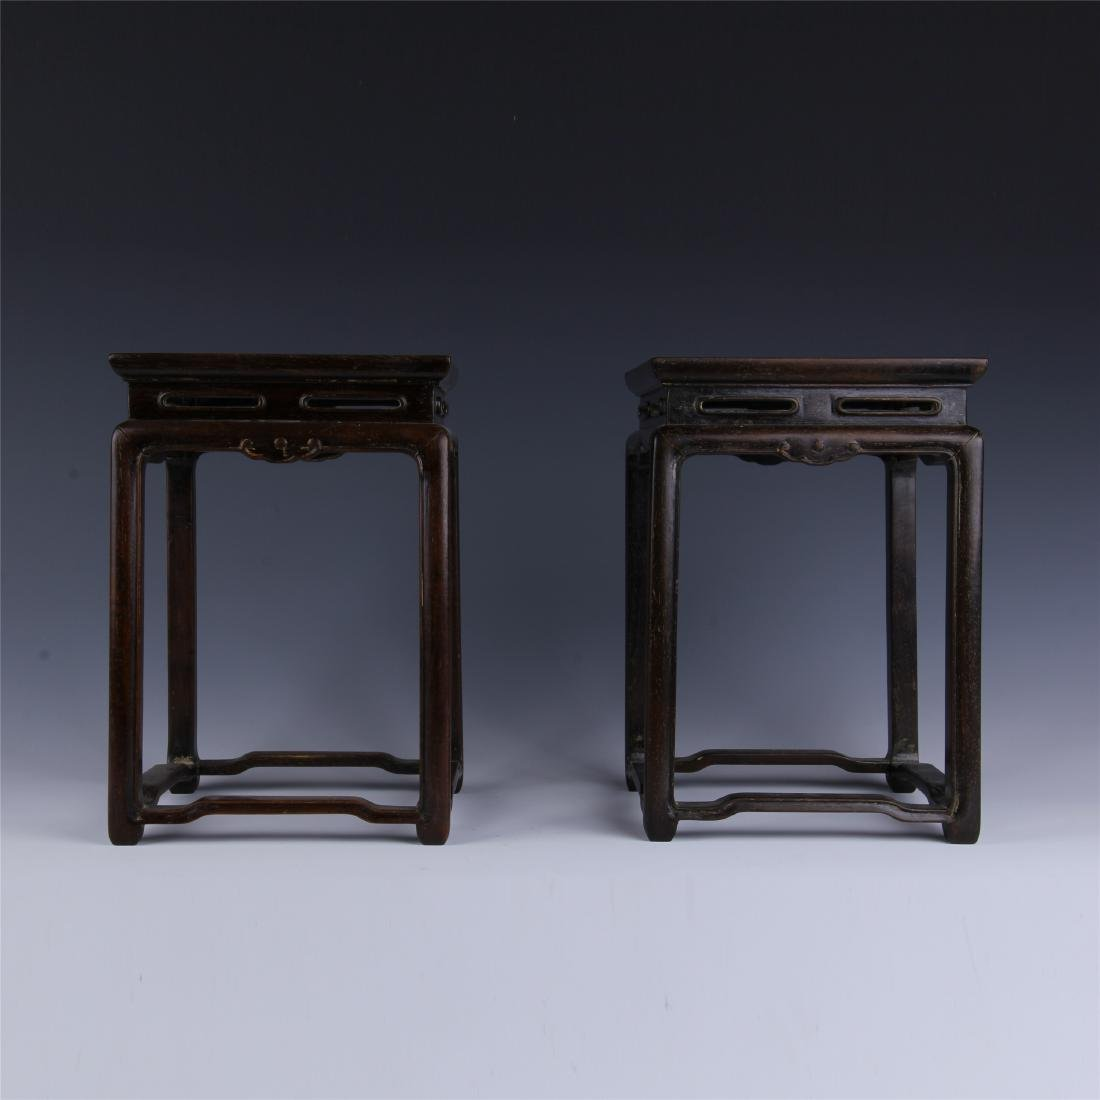 PAIR OF CHINESE ZITAN SQUARE PLANTER STANDS